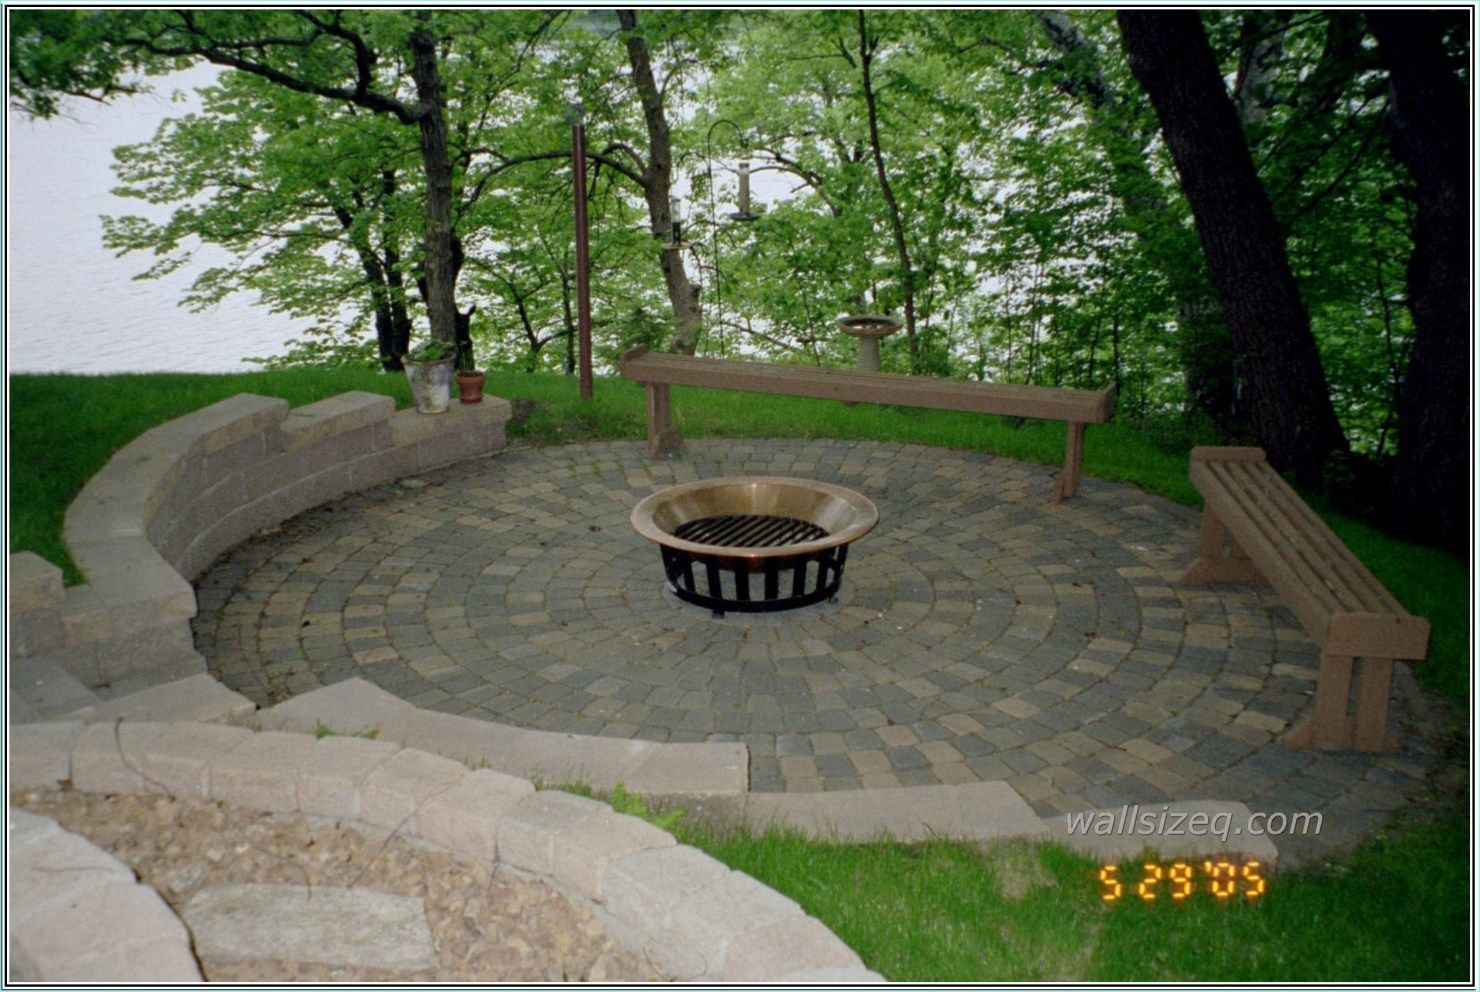 39 Awesome Very Small Patio Ideas   Patio design, Budget ... on Very Small Patio Ideas id=31859